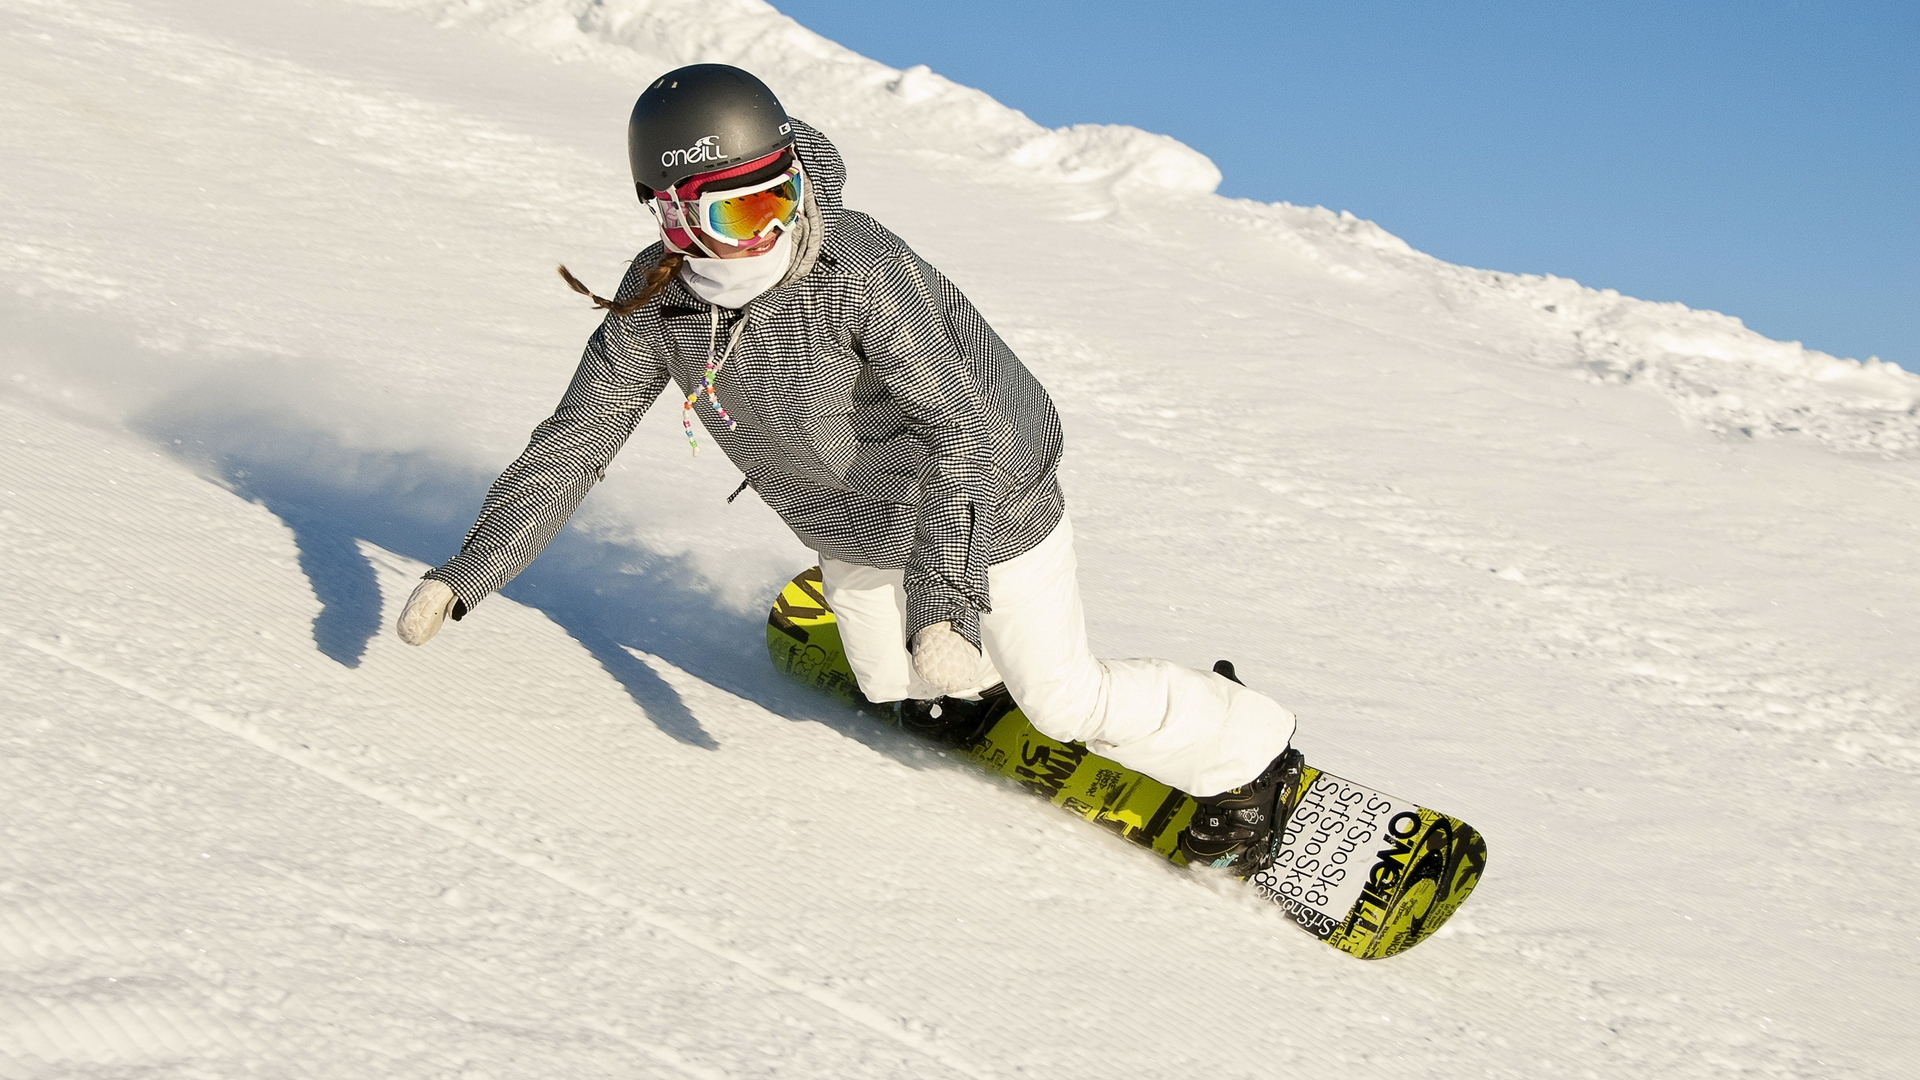 female snowboarding wallpaper 61345